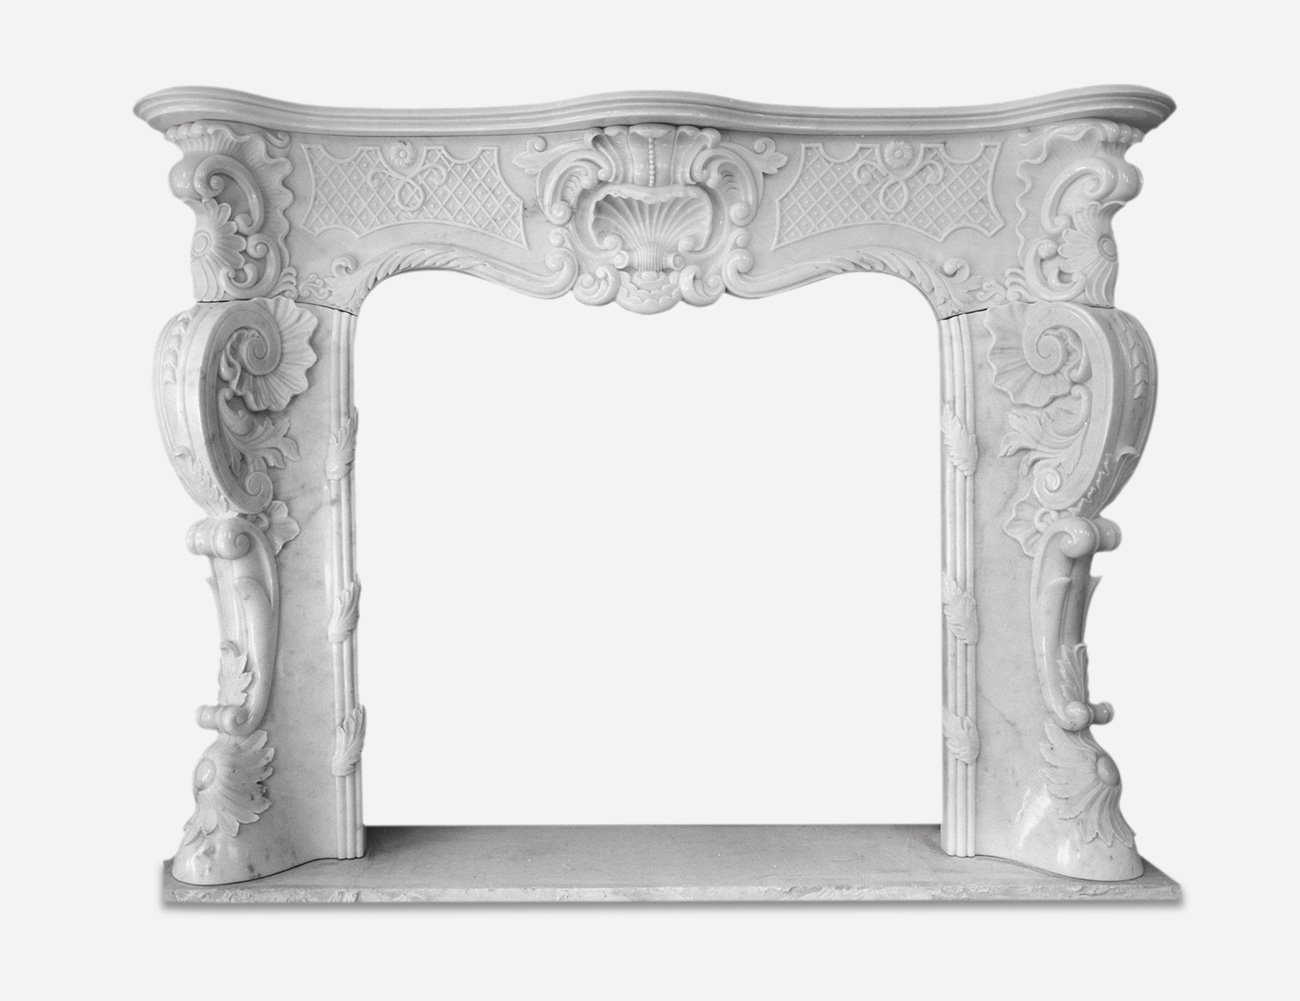 White Carrara Marble Fireplaces - 2